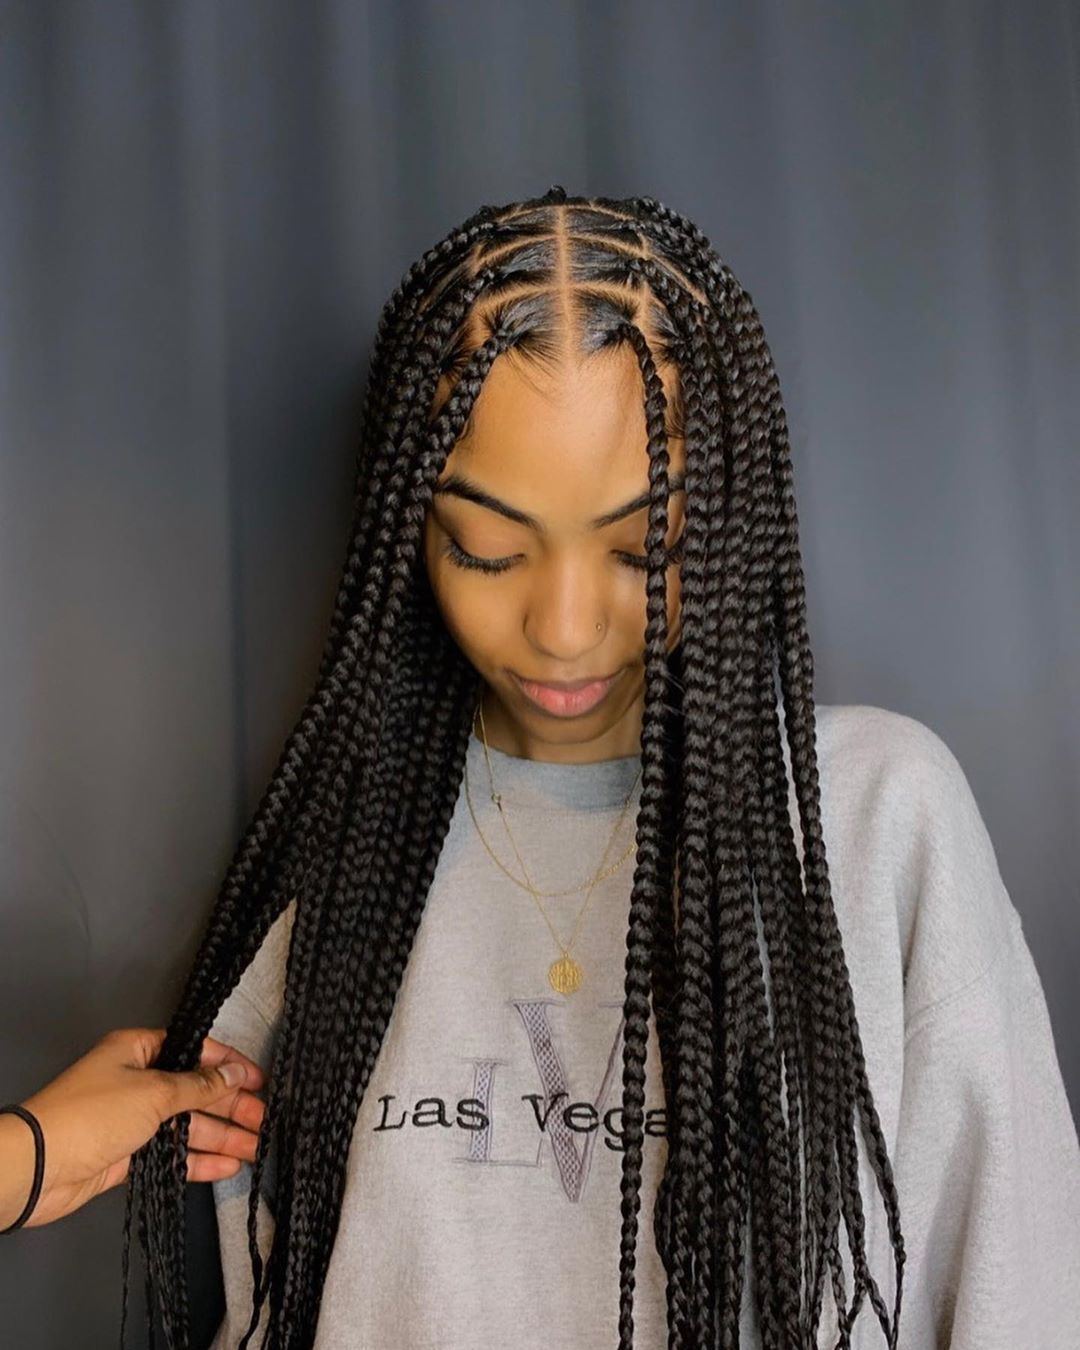 Brazy On Instagram Beauty Smedium Knotless Box Braids Dm To Book An Appointment Braids For Short Hair Black Girl Braided Hairstyles Braided Hairstyles